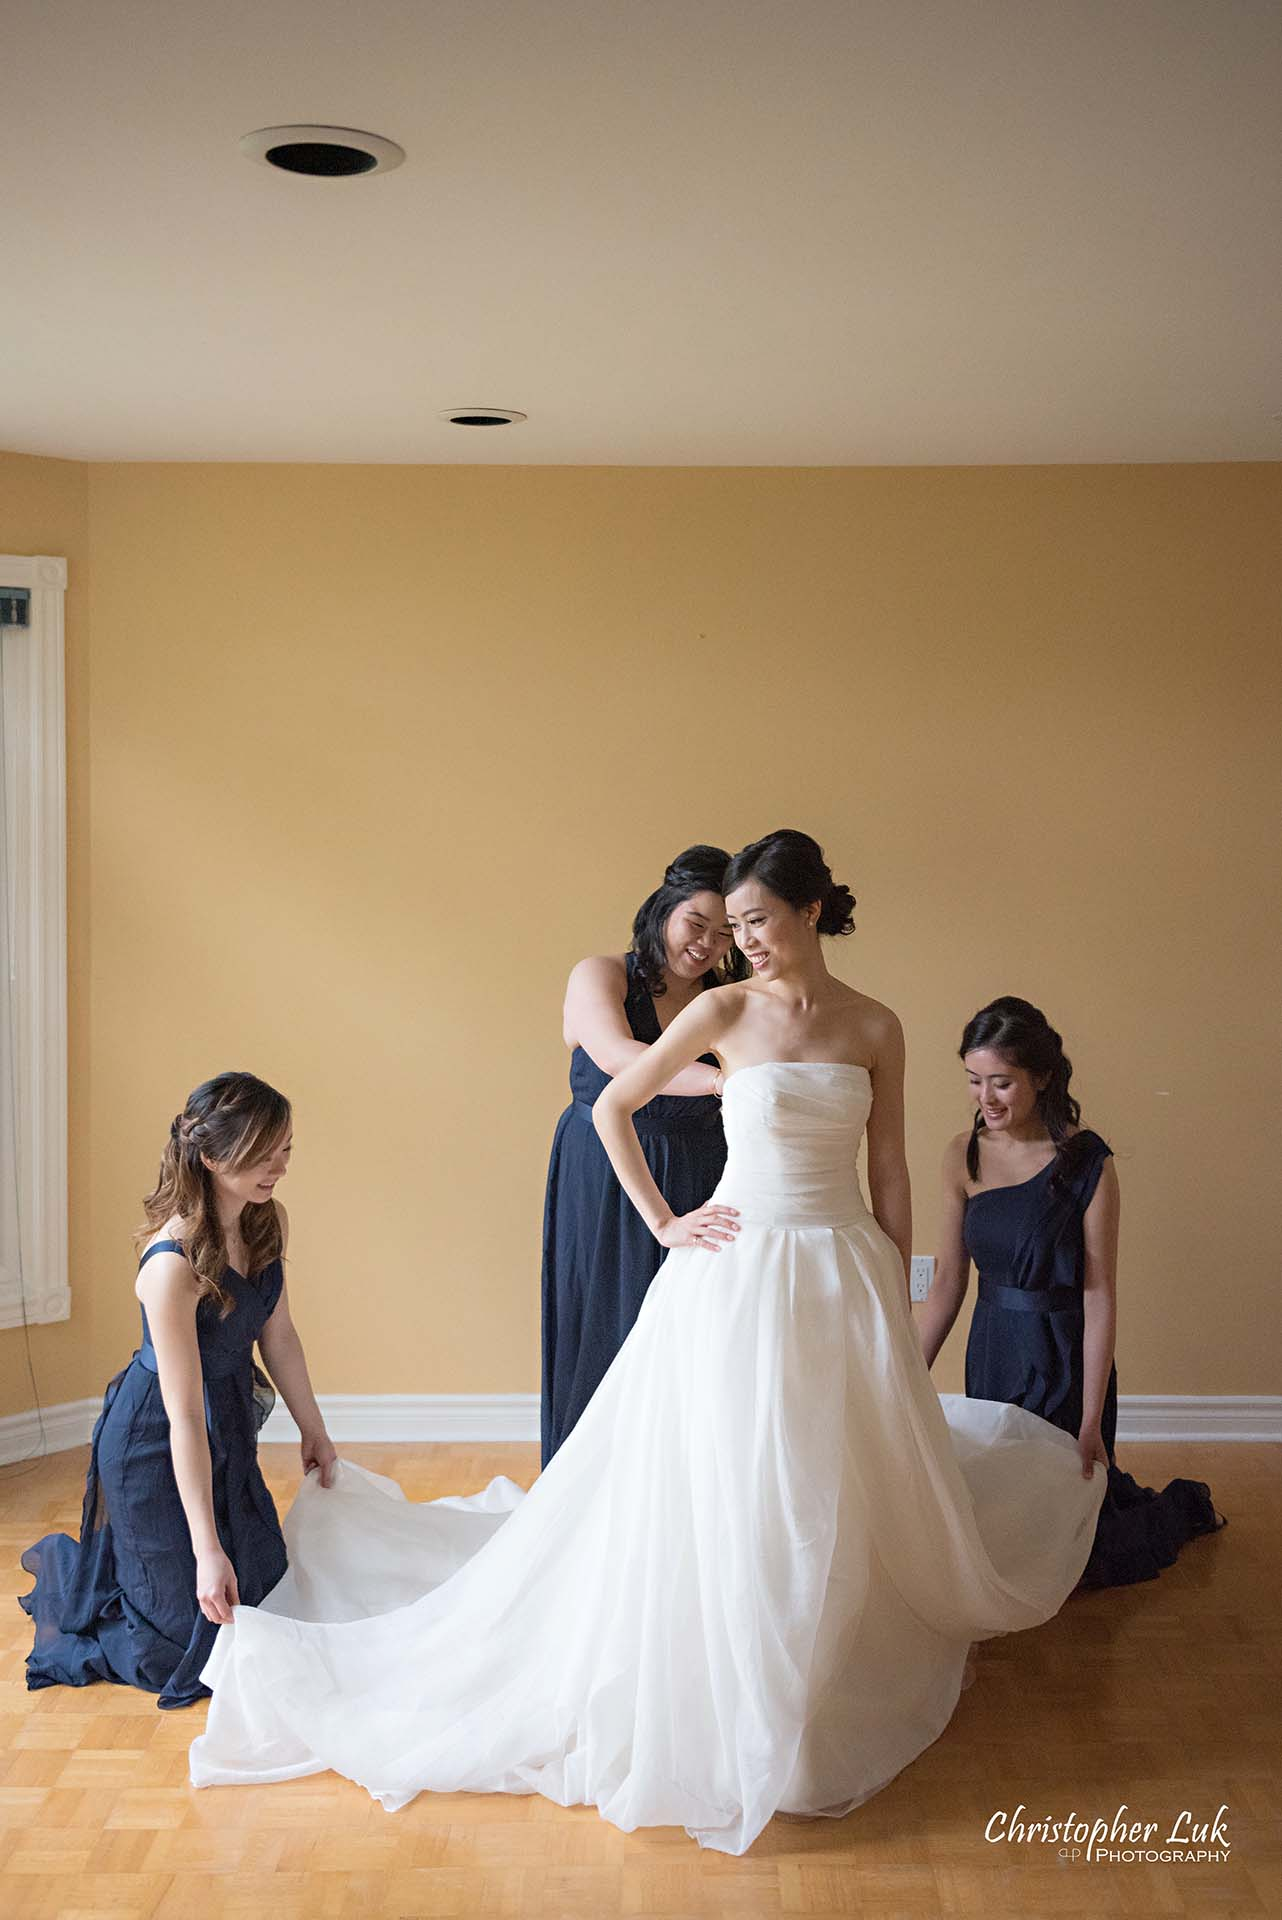 Christopher Luk Toronto Wedding Photographer Bride Getting Ready Preparations Bridal White Gown Dress Maid of Honour Bridesmaids Portrait